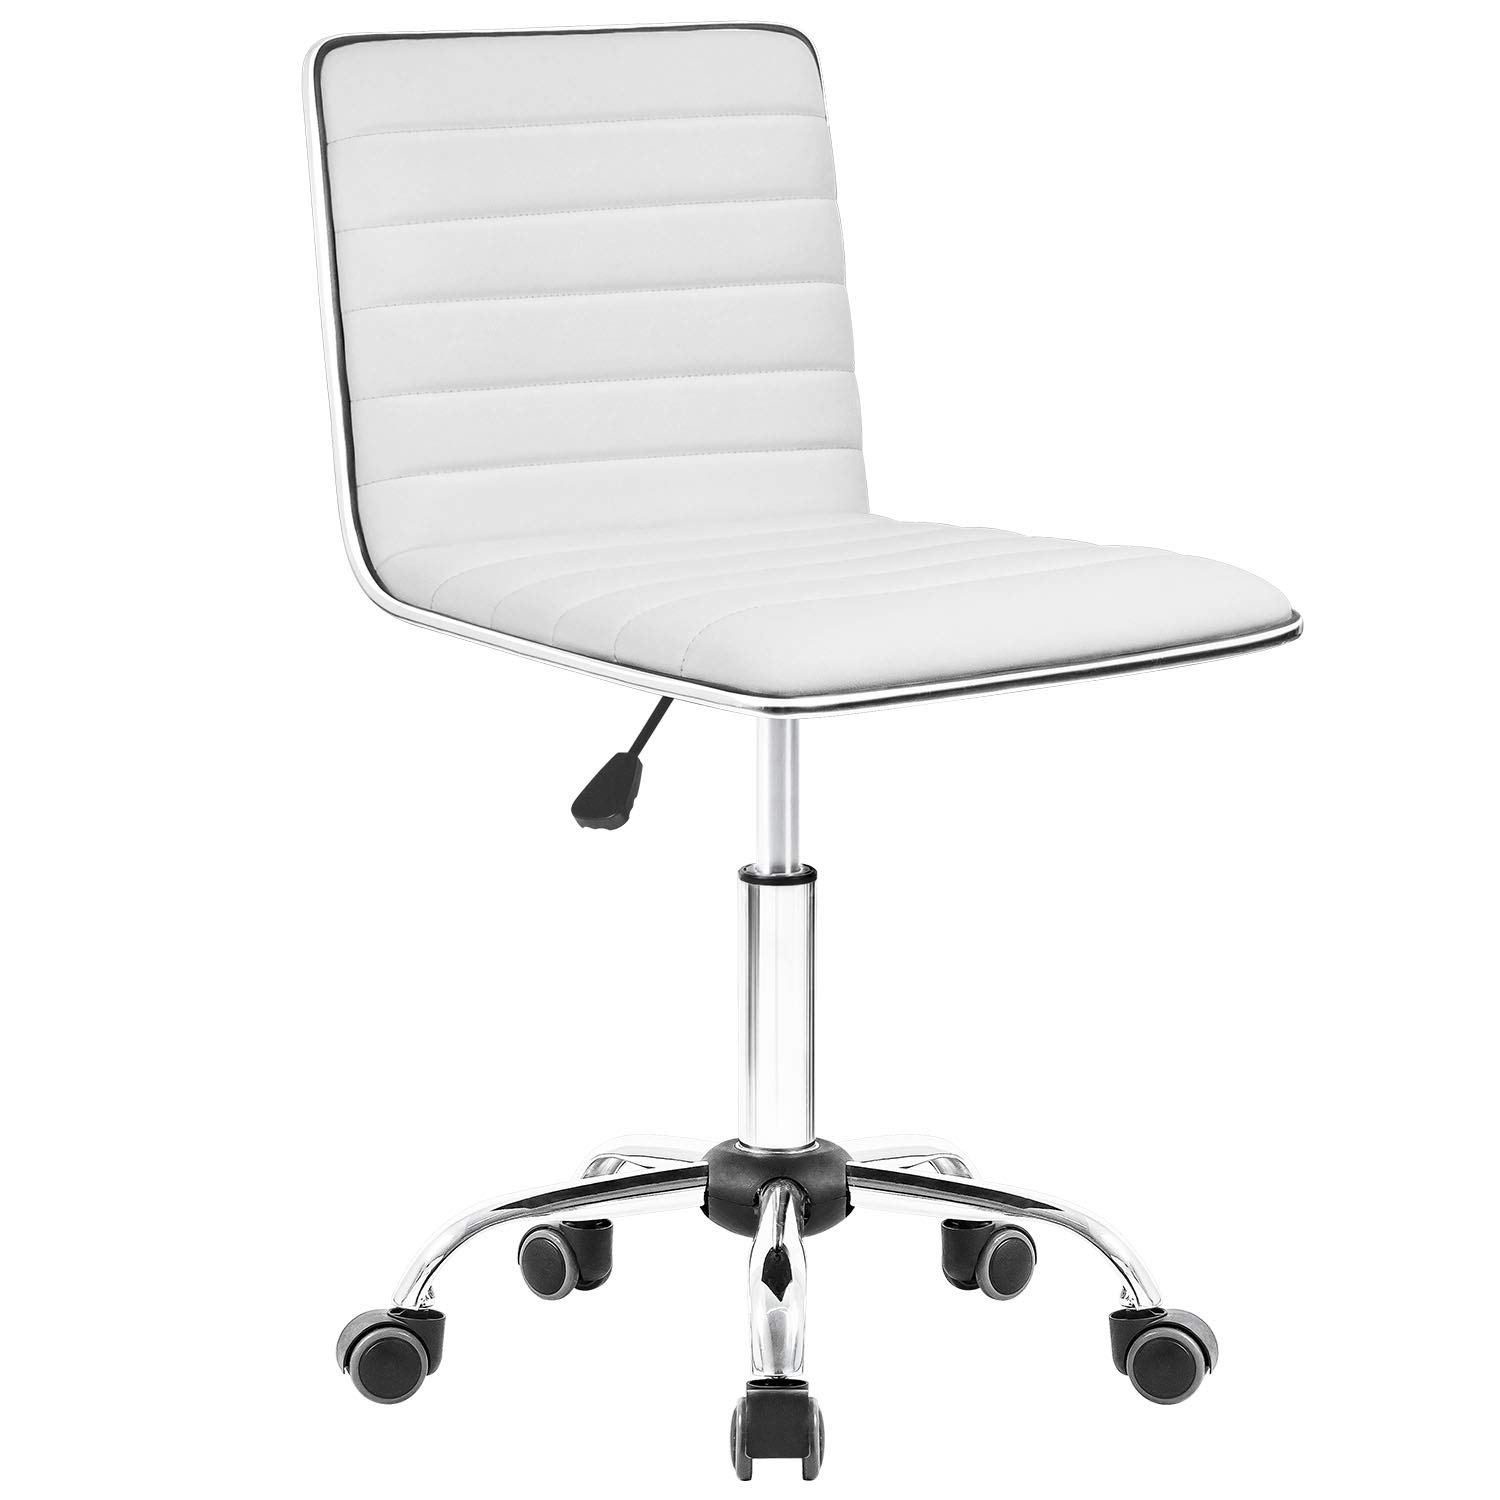 Walnew Task Chair Desk Chair Mid Back Armless Vanity Chair Swivel Office Rolling Leather Computer Chairs Ribbed Adjustable Conference Chair White Walmart Com Walmart Com